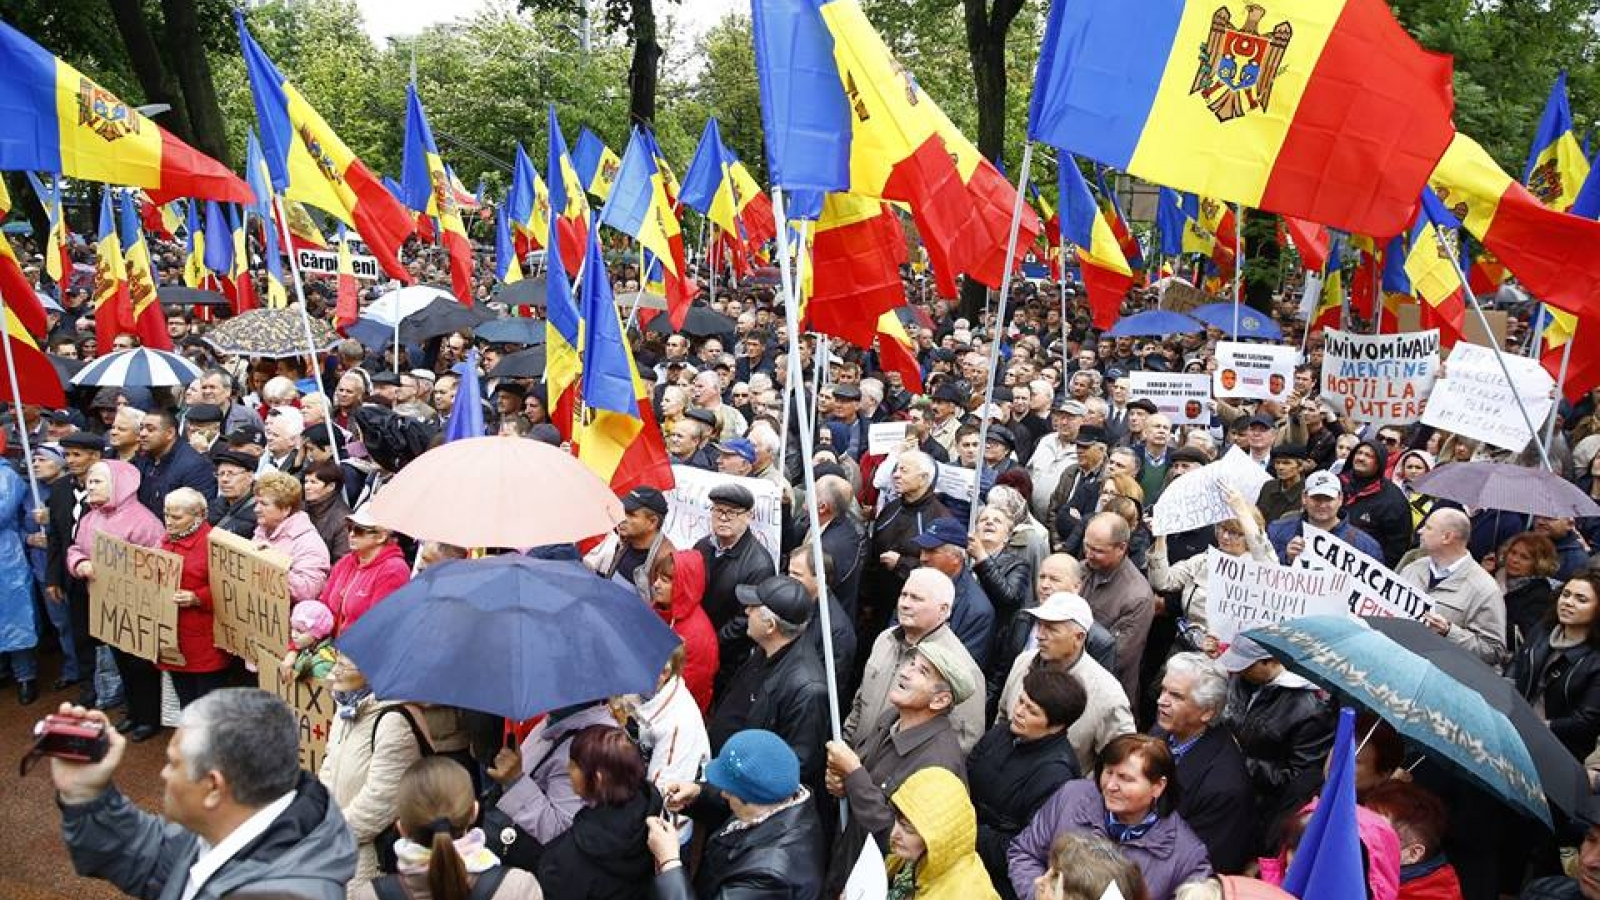 Civil society expresses concerns on fighting corruption and supporting media freedom and human rights in Moldova